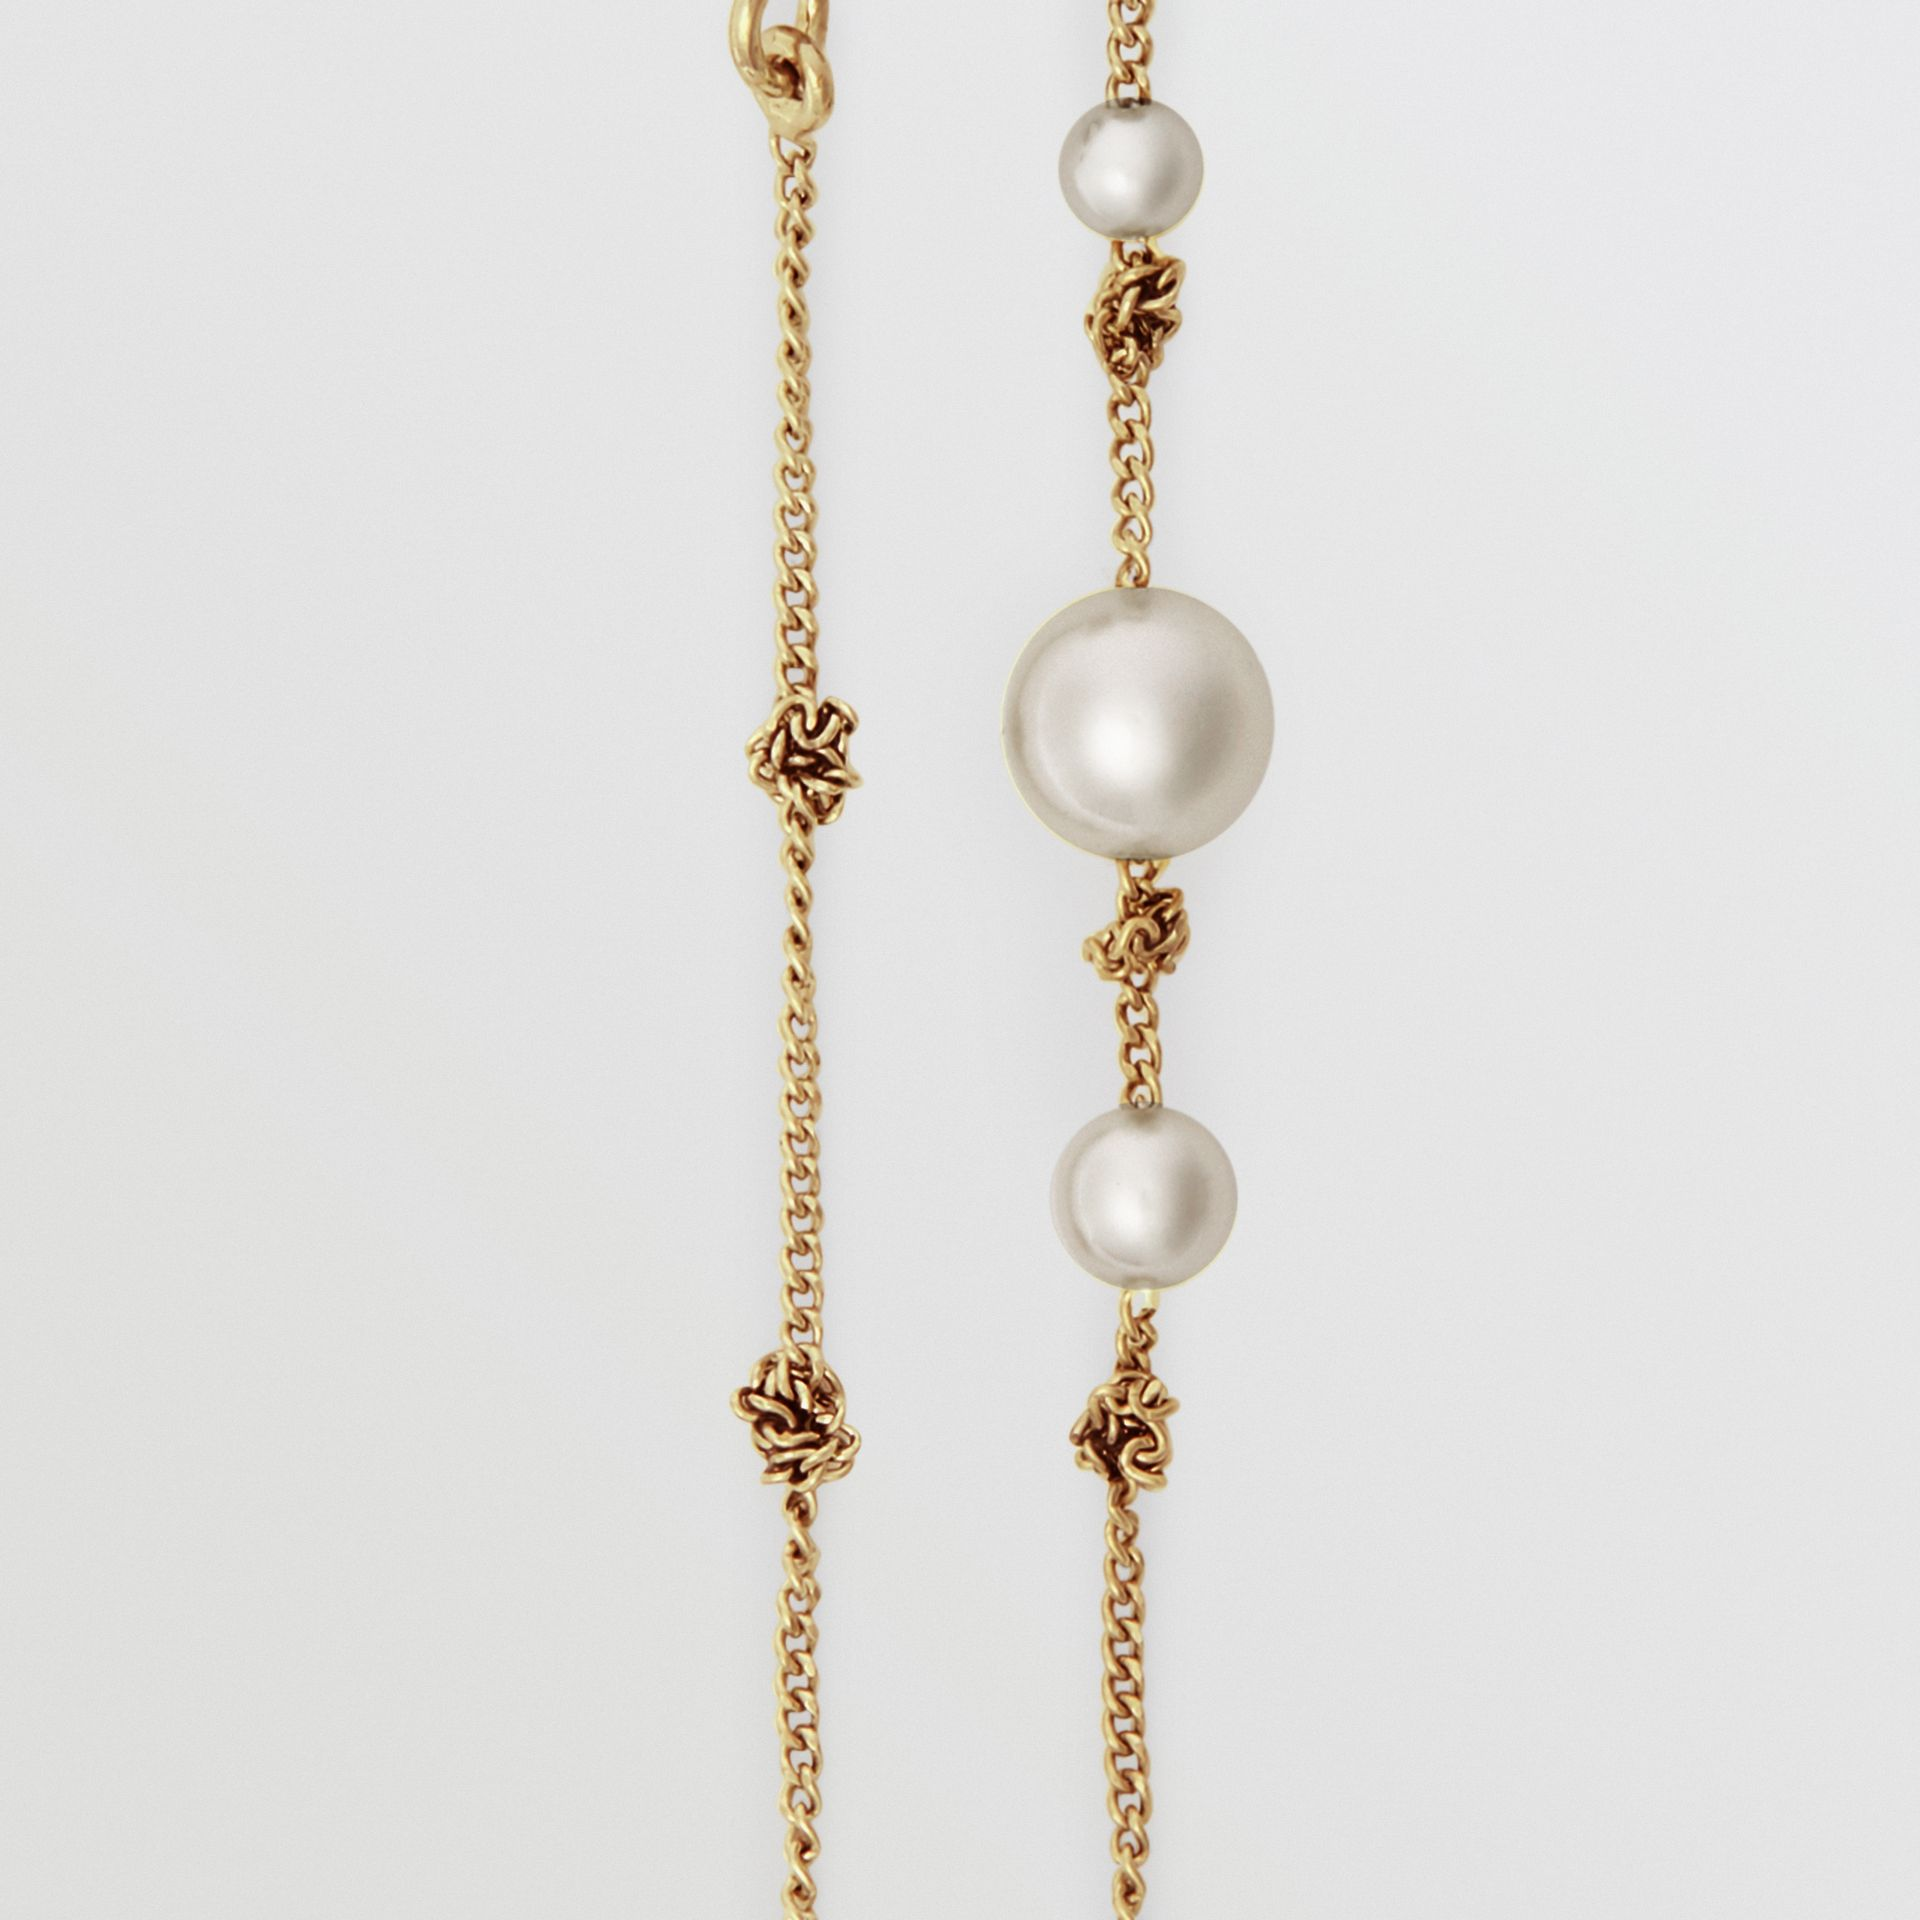 Faux Pearl Gold-plated Drop Earrings in Light - Women | Burberry United States - gallery image 1